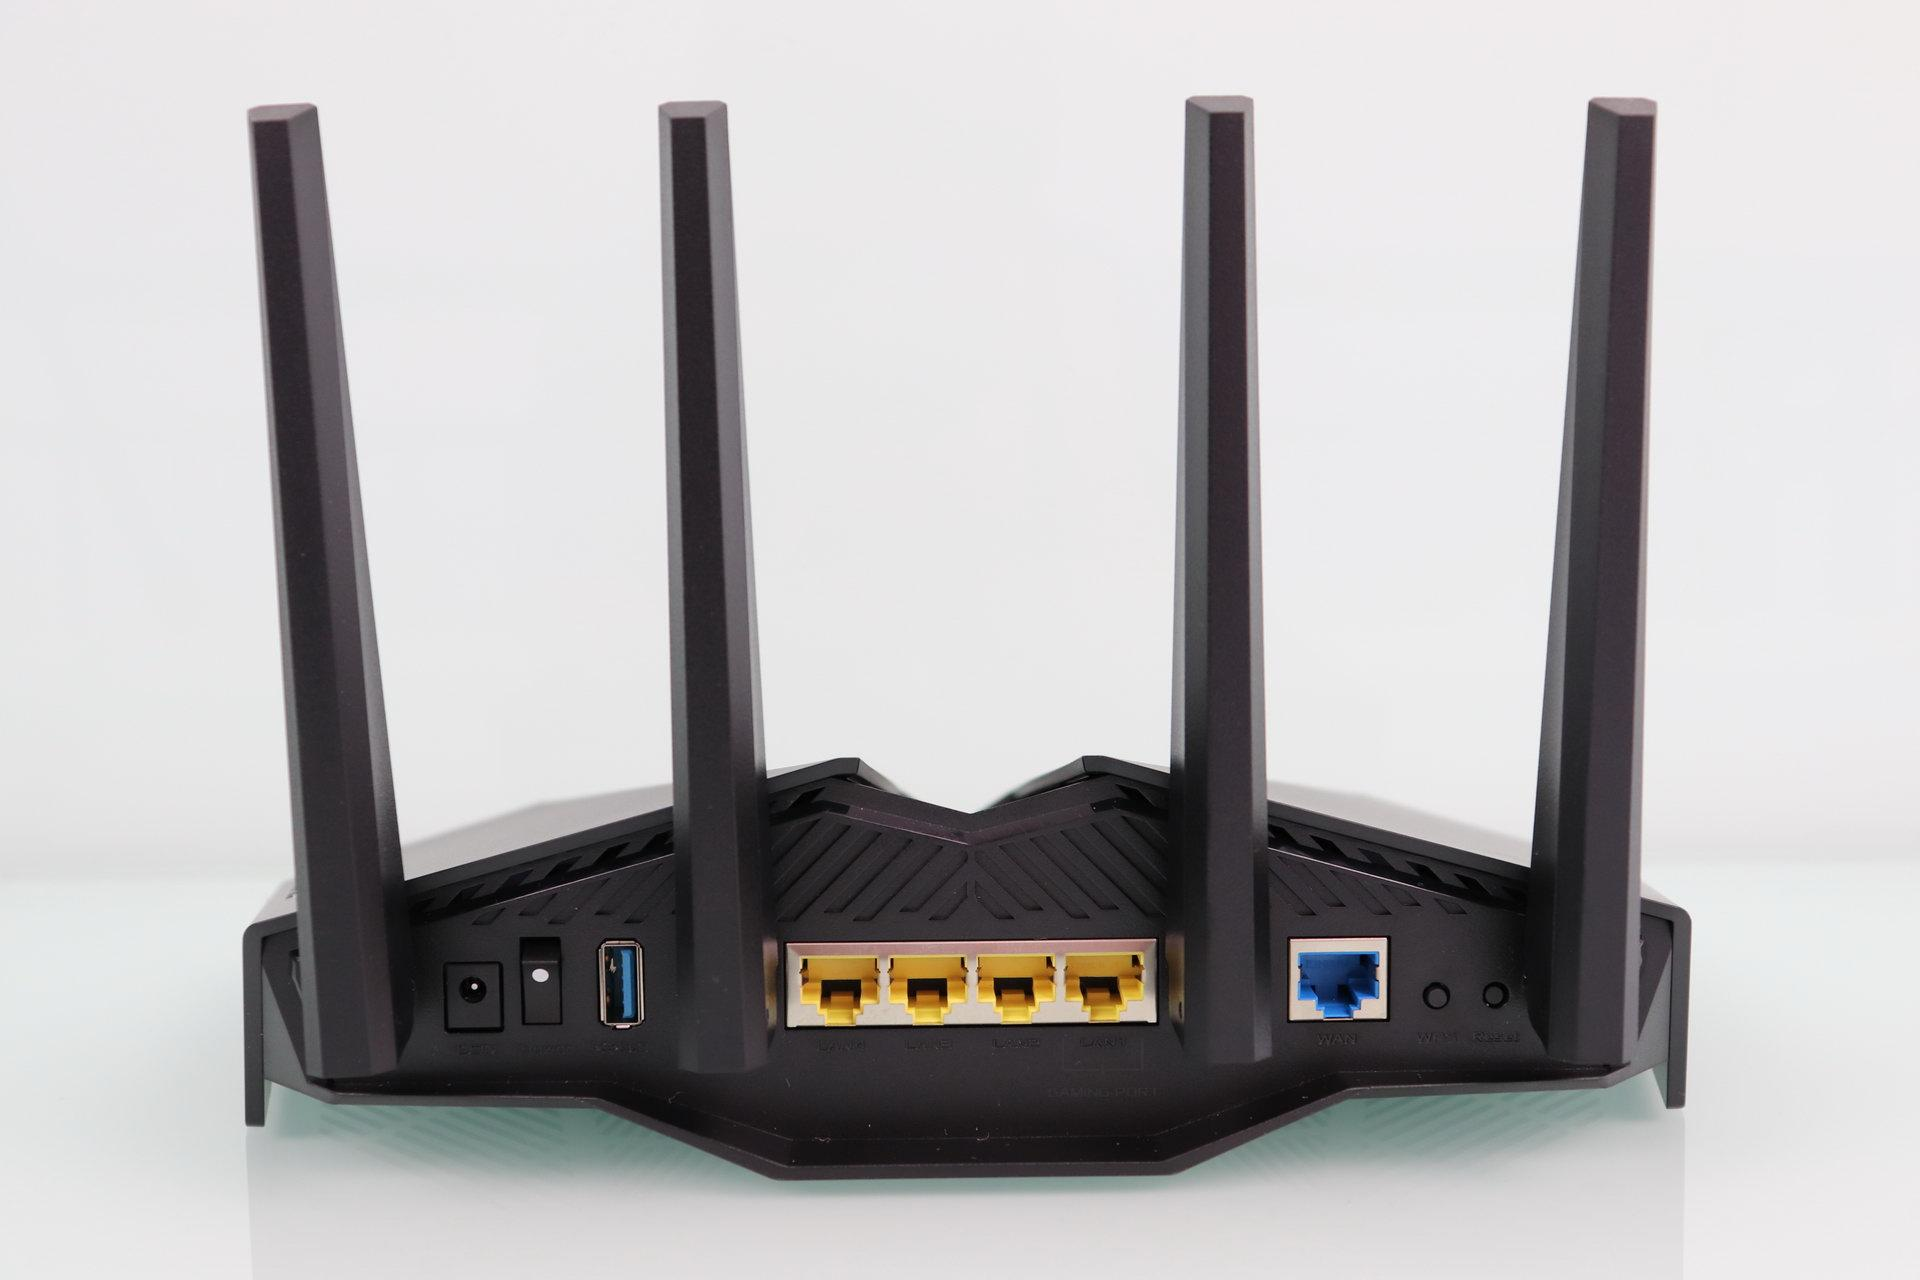 Rear of the ASUS RT-AX82U router in detail